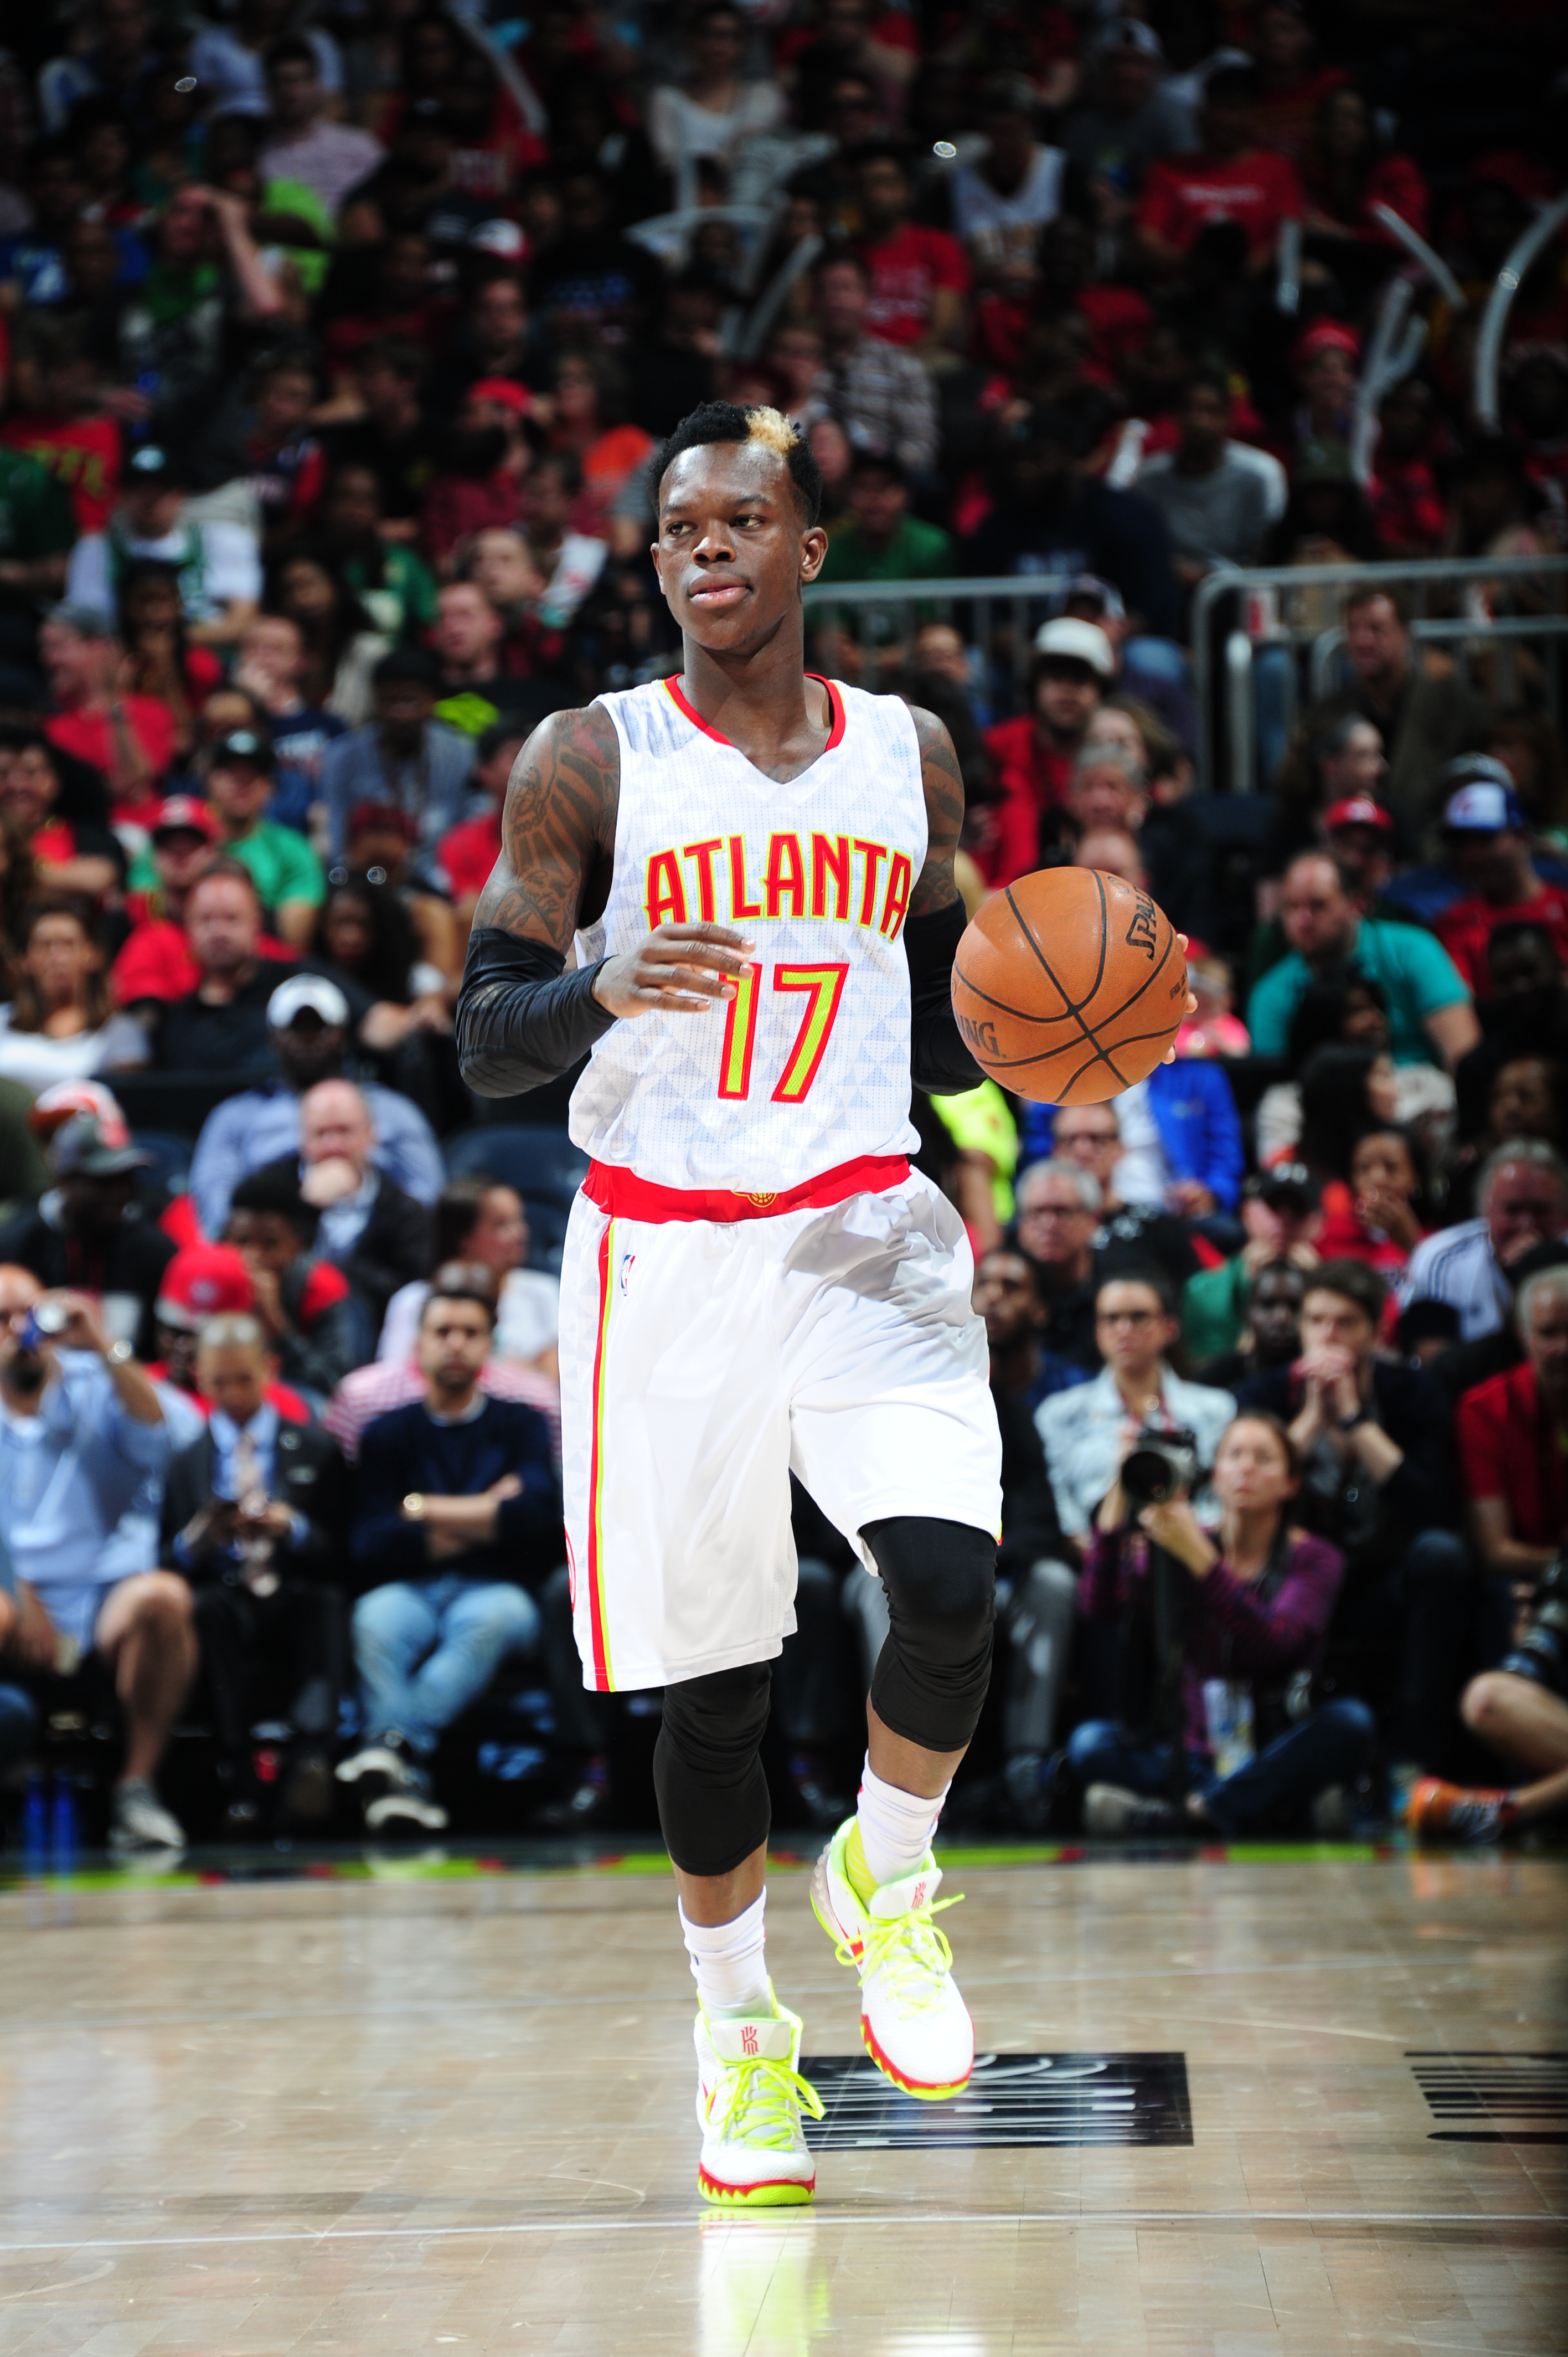 ATLANTA, GA - APRIL 19:  Dennis Schroder #17 of the Atlanta Hawks brings the ball up court against the Boston Celtics in Game Two of the Eastern Conference Quarterfinals during the 2016 NBA Playoffs on April 19, 2016 at Philips Arena in Atlanta, Georgia.